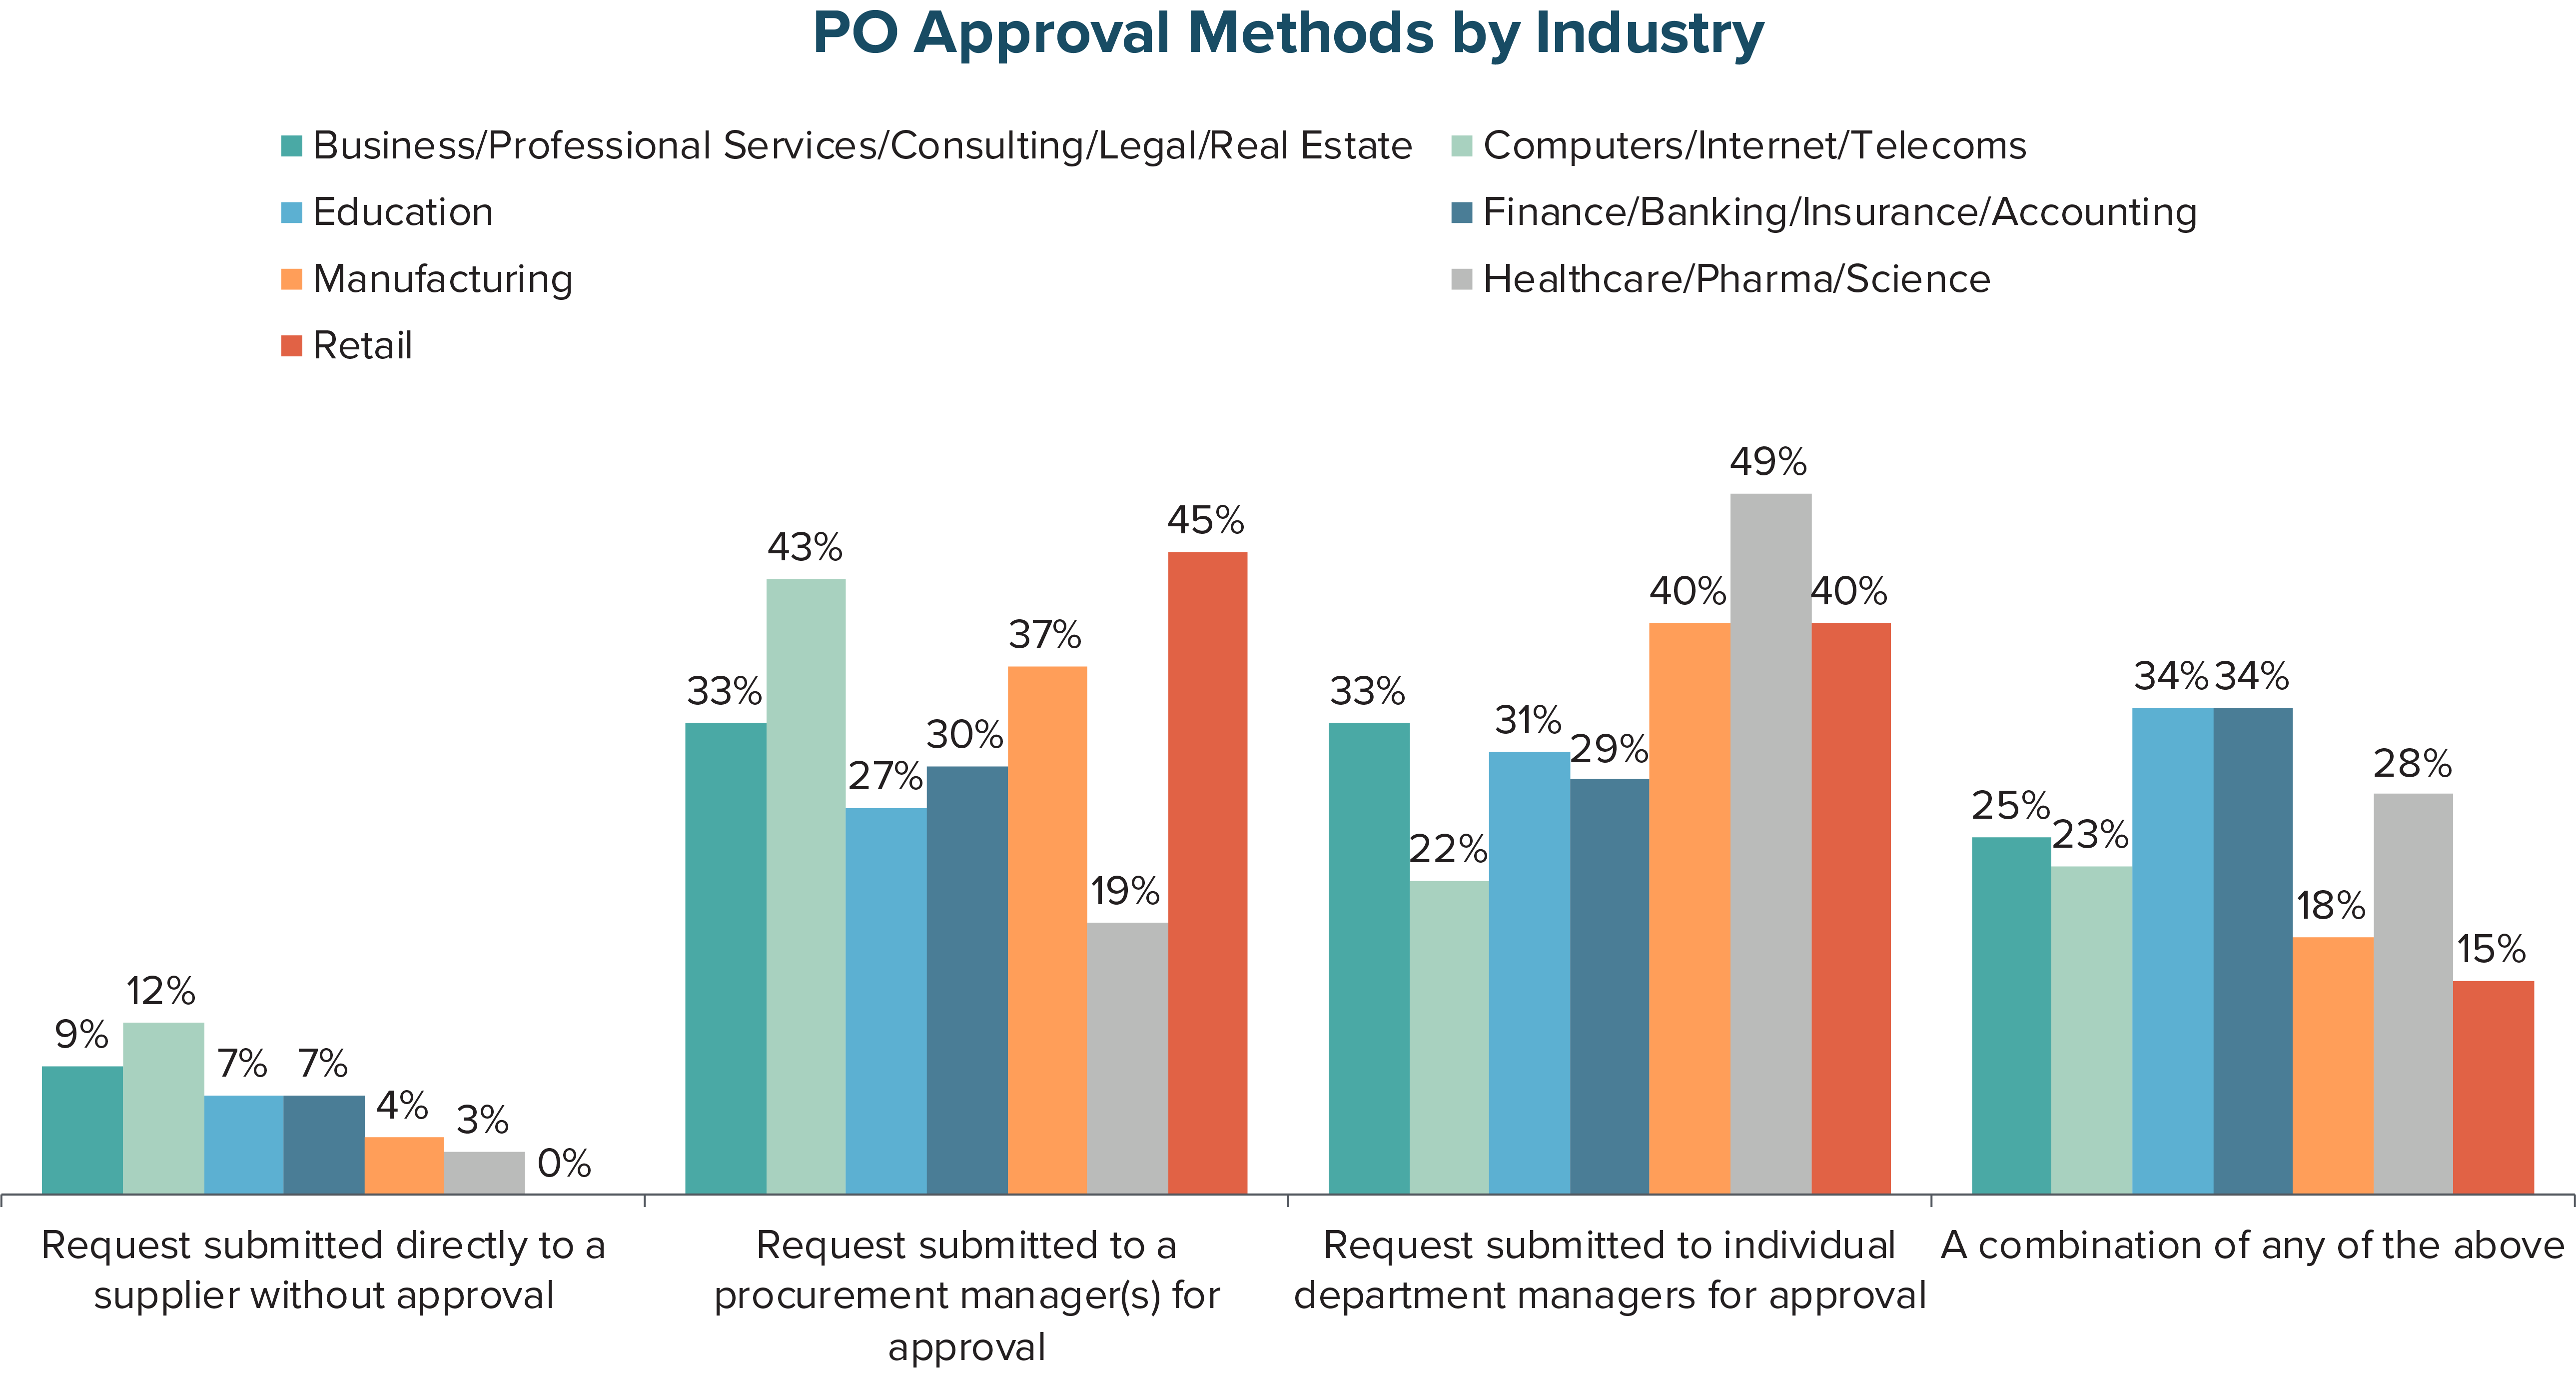 PO Approval Methods by Industry